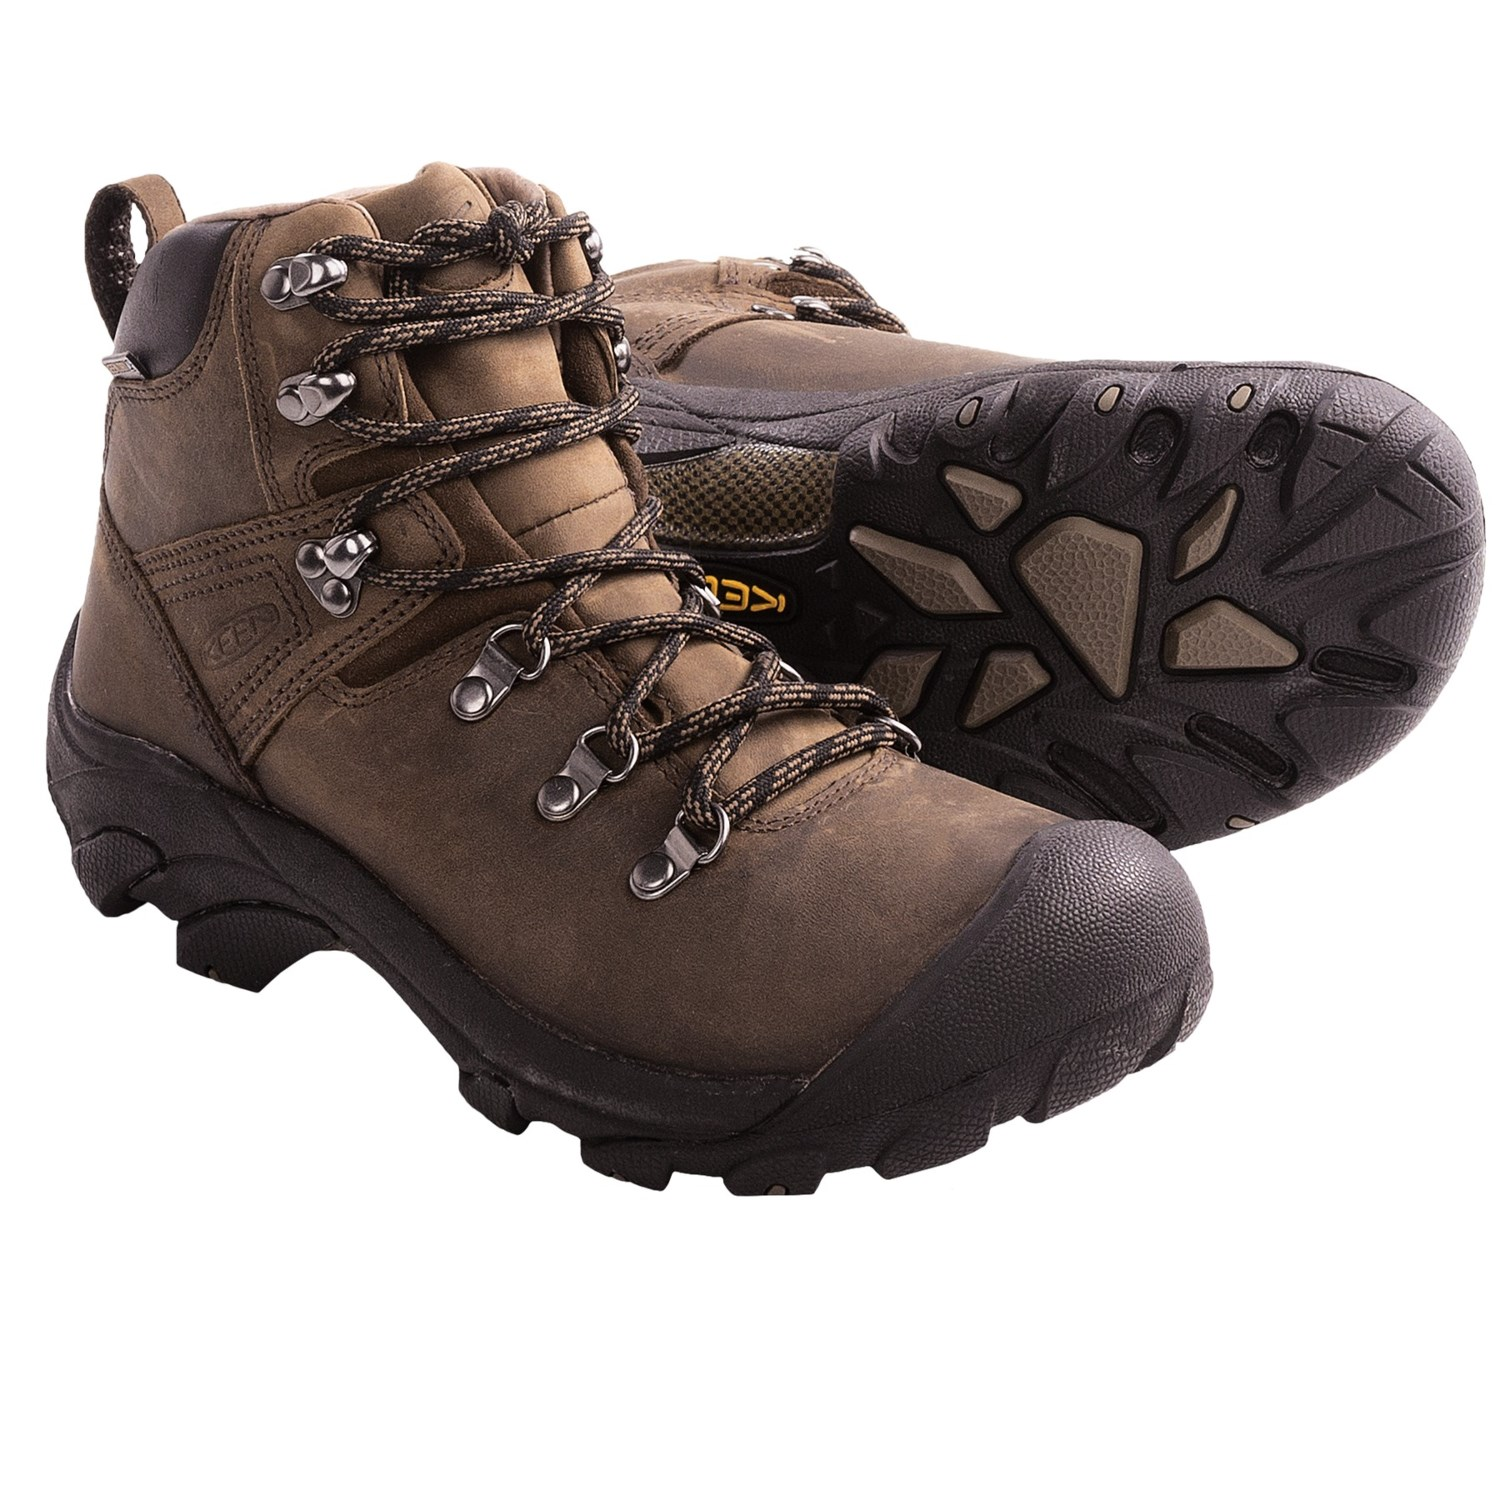 2f113ae7059 Clothes stores – Keen hiking shoes women